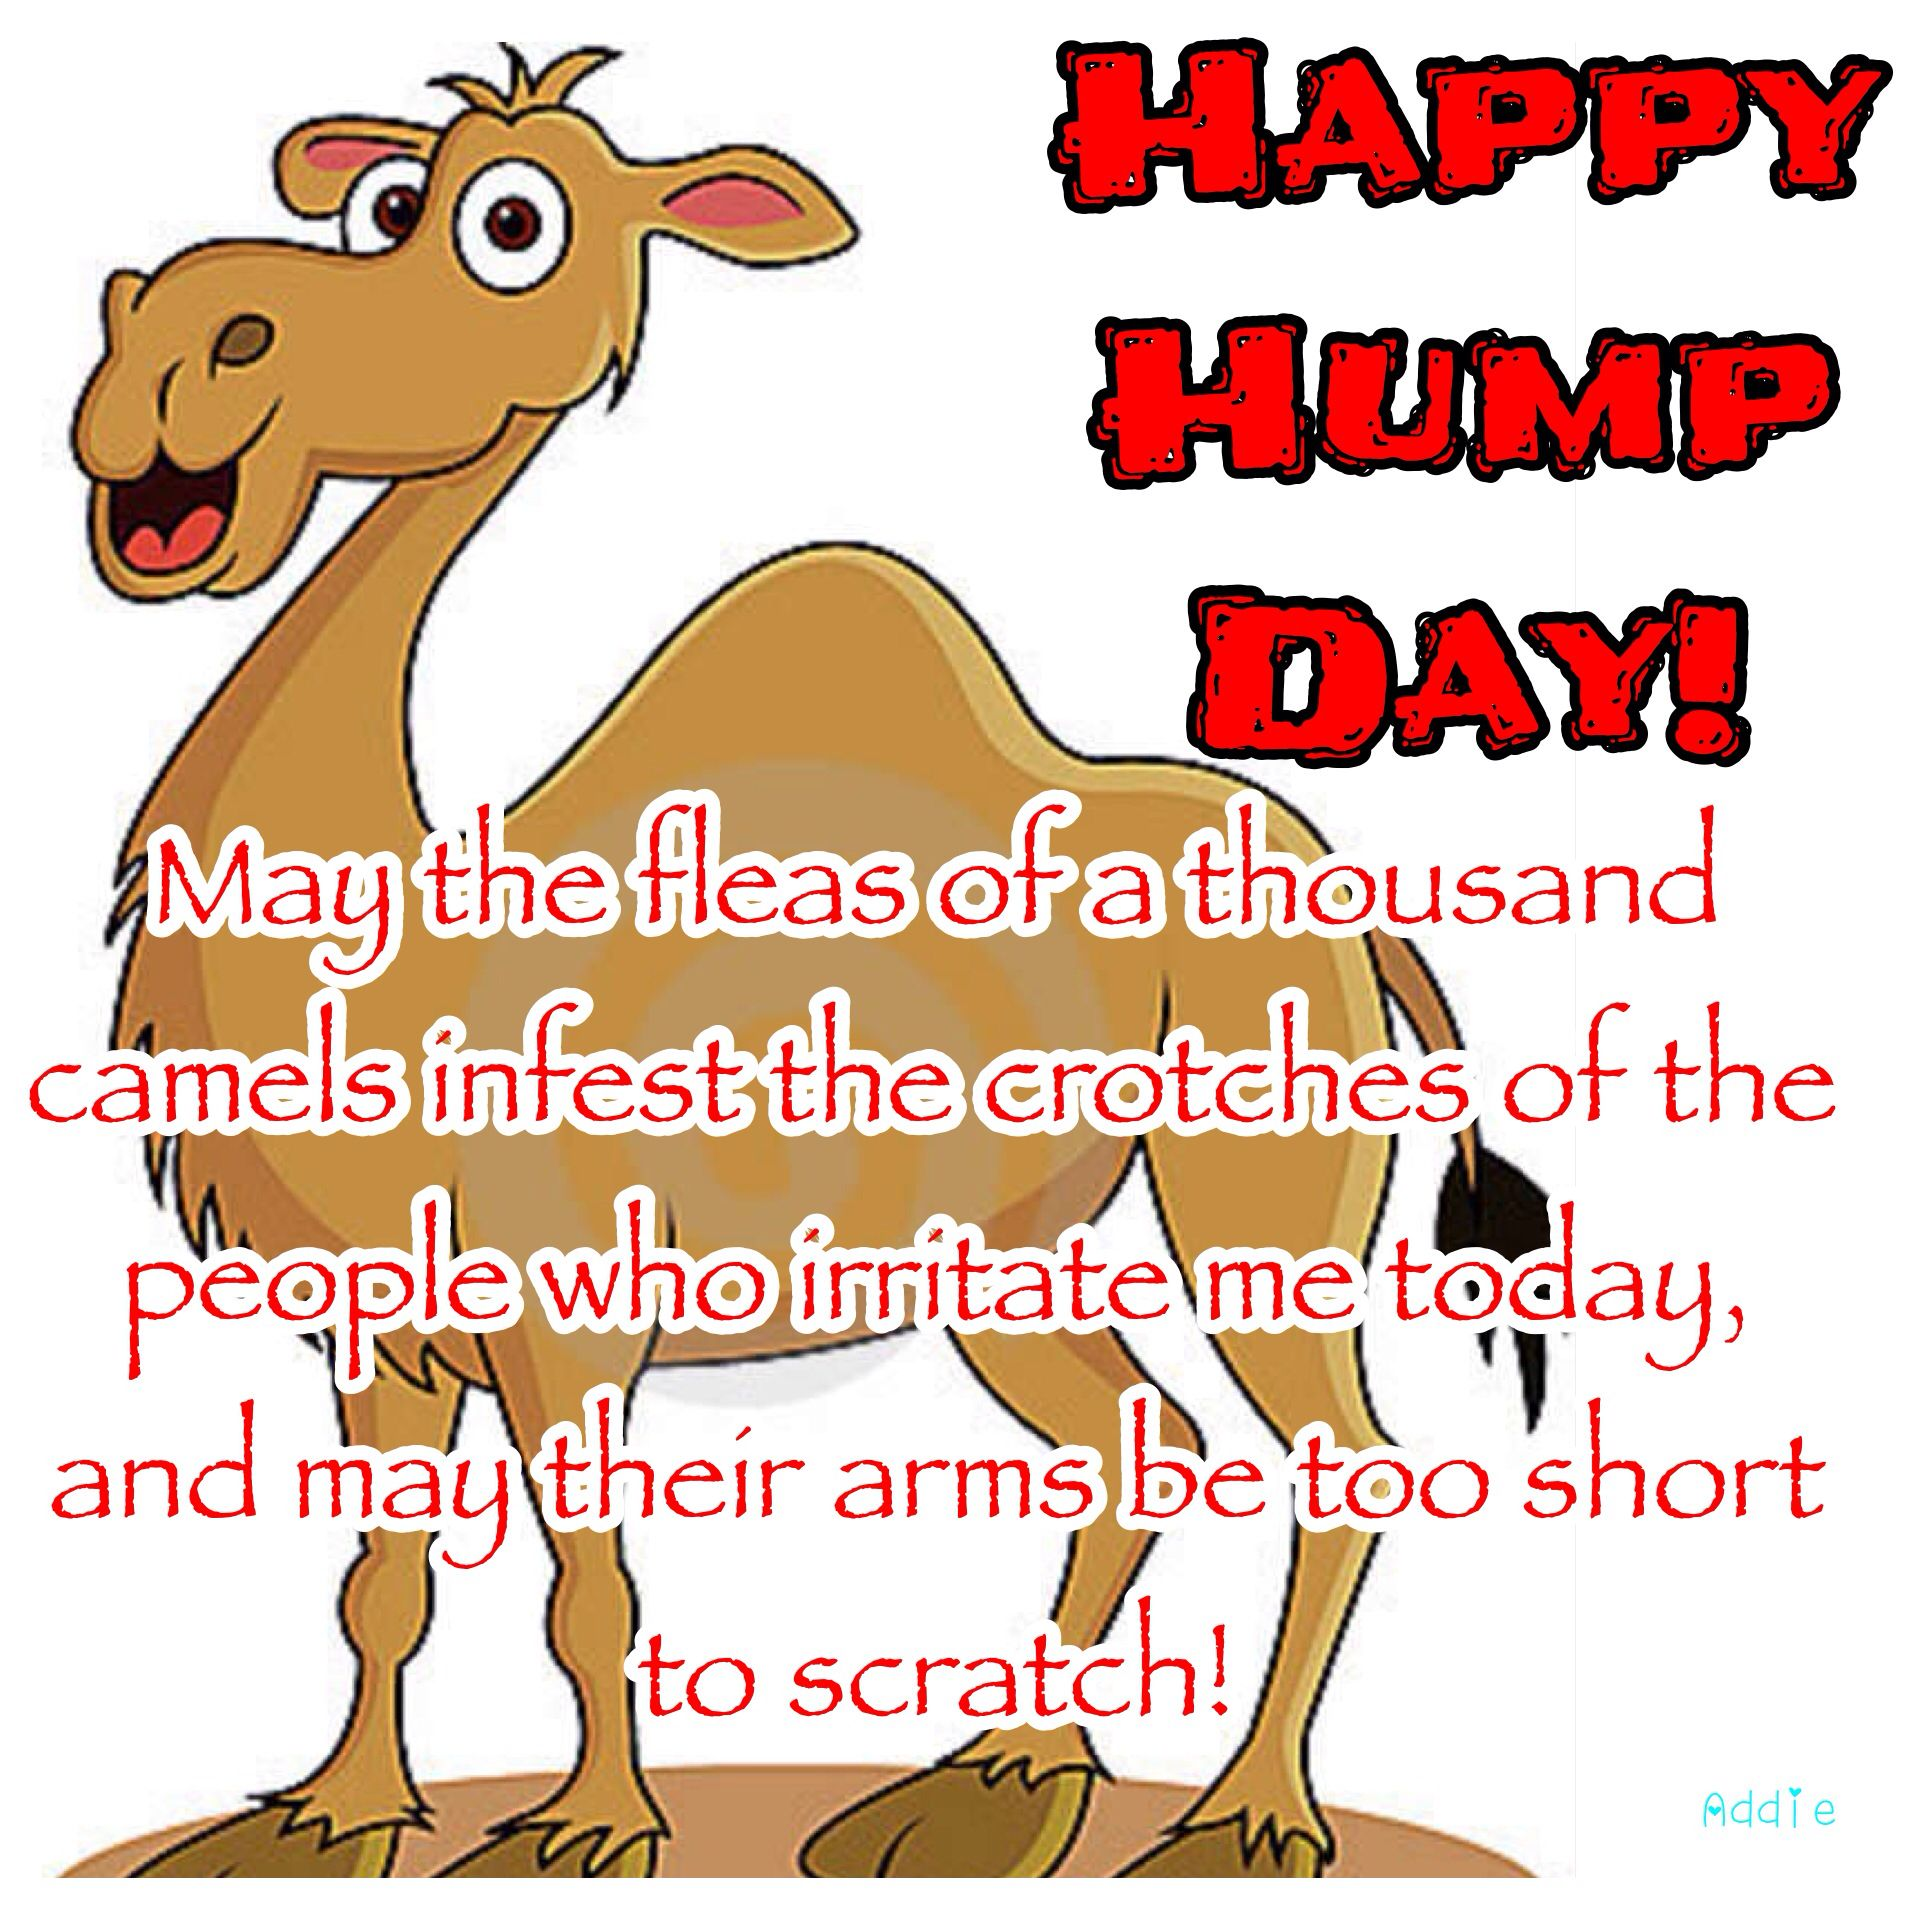 ... Camels Infest The Crotches Of The People Who Irritate Me Today, And May  Their Arms Be Too Short To Scratch! Happy Hump Day Wednesday Humor Funny ...